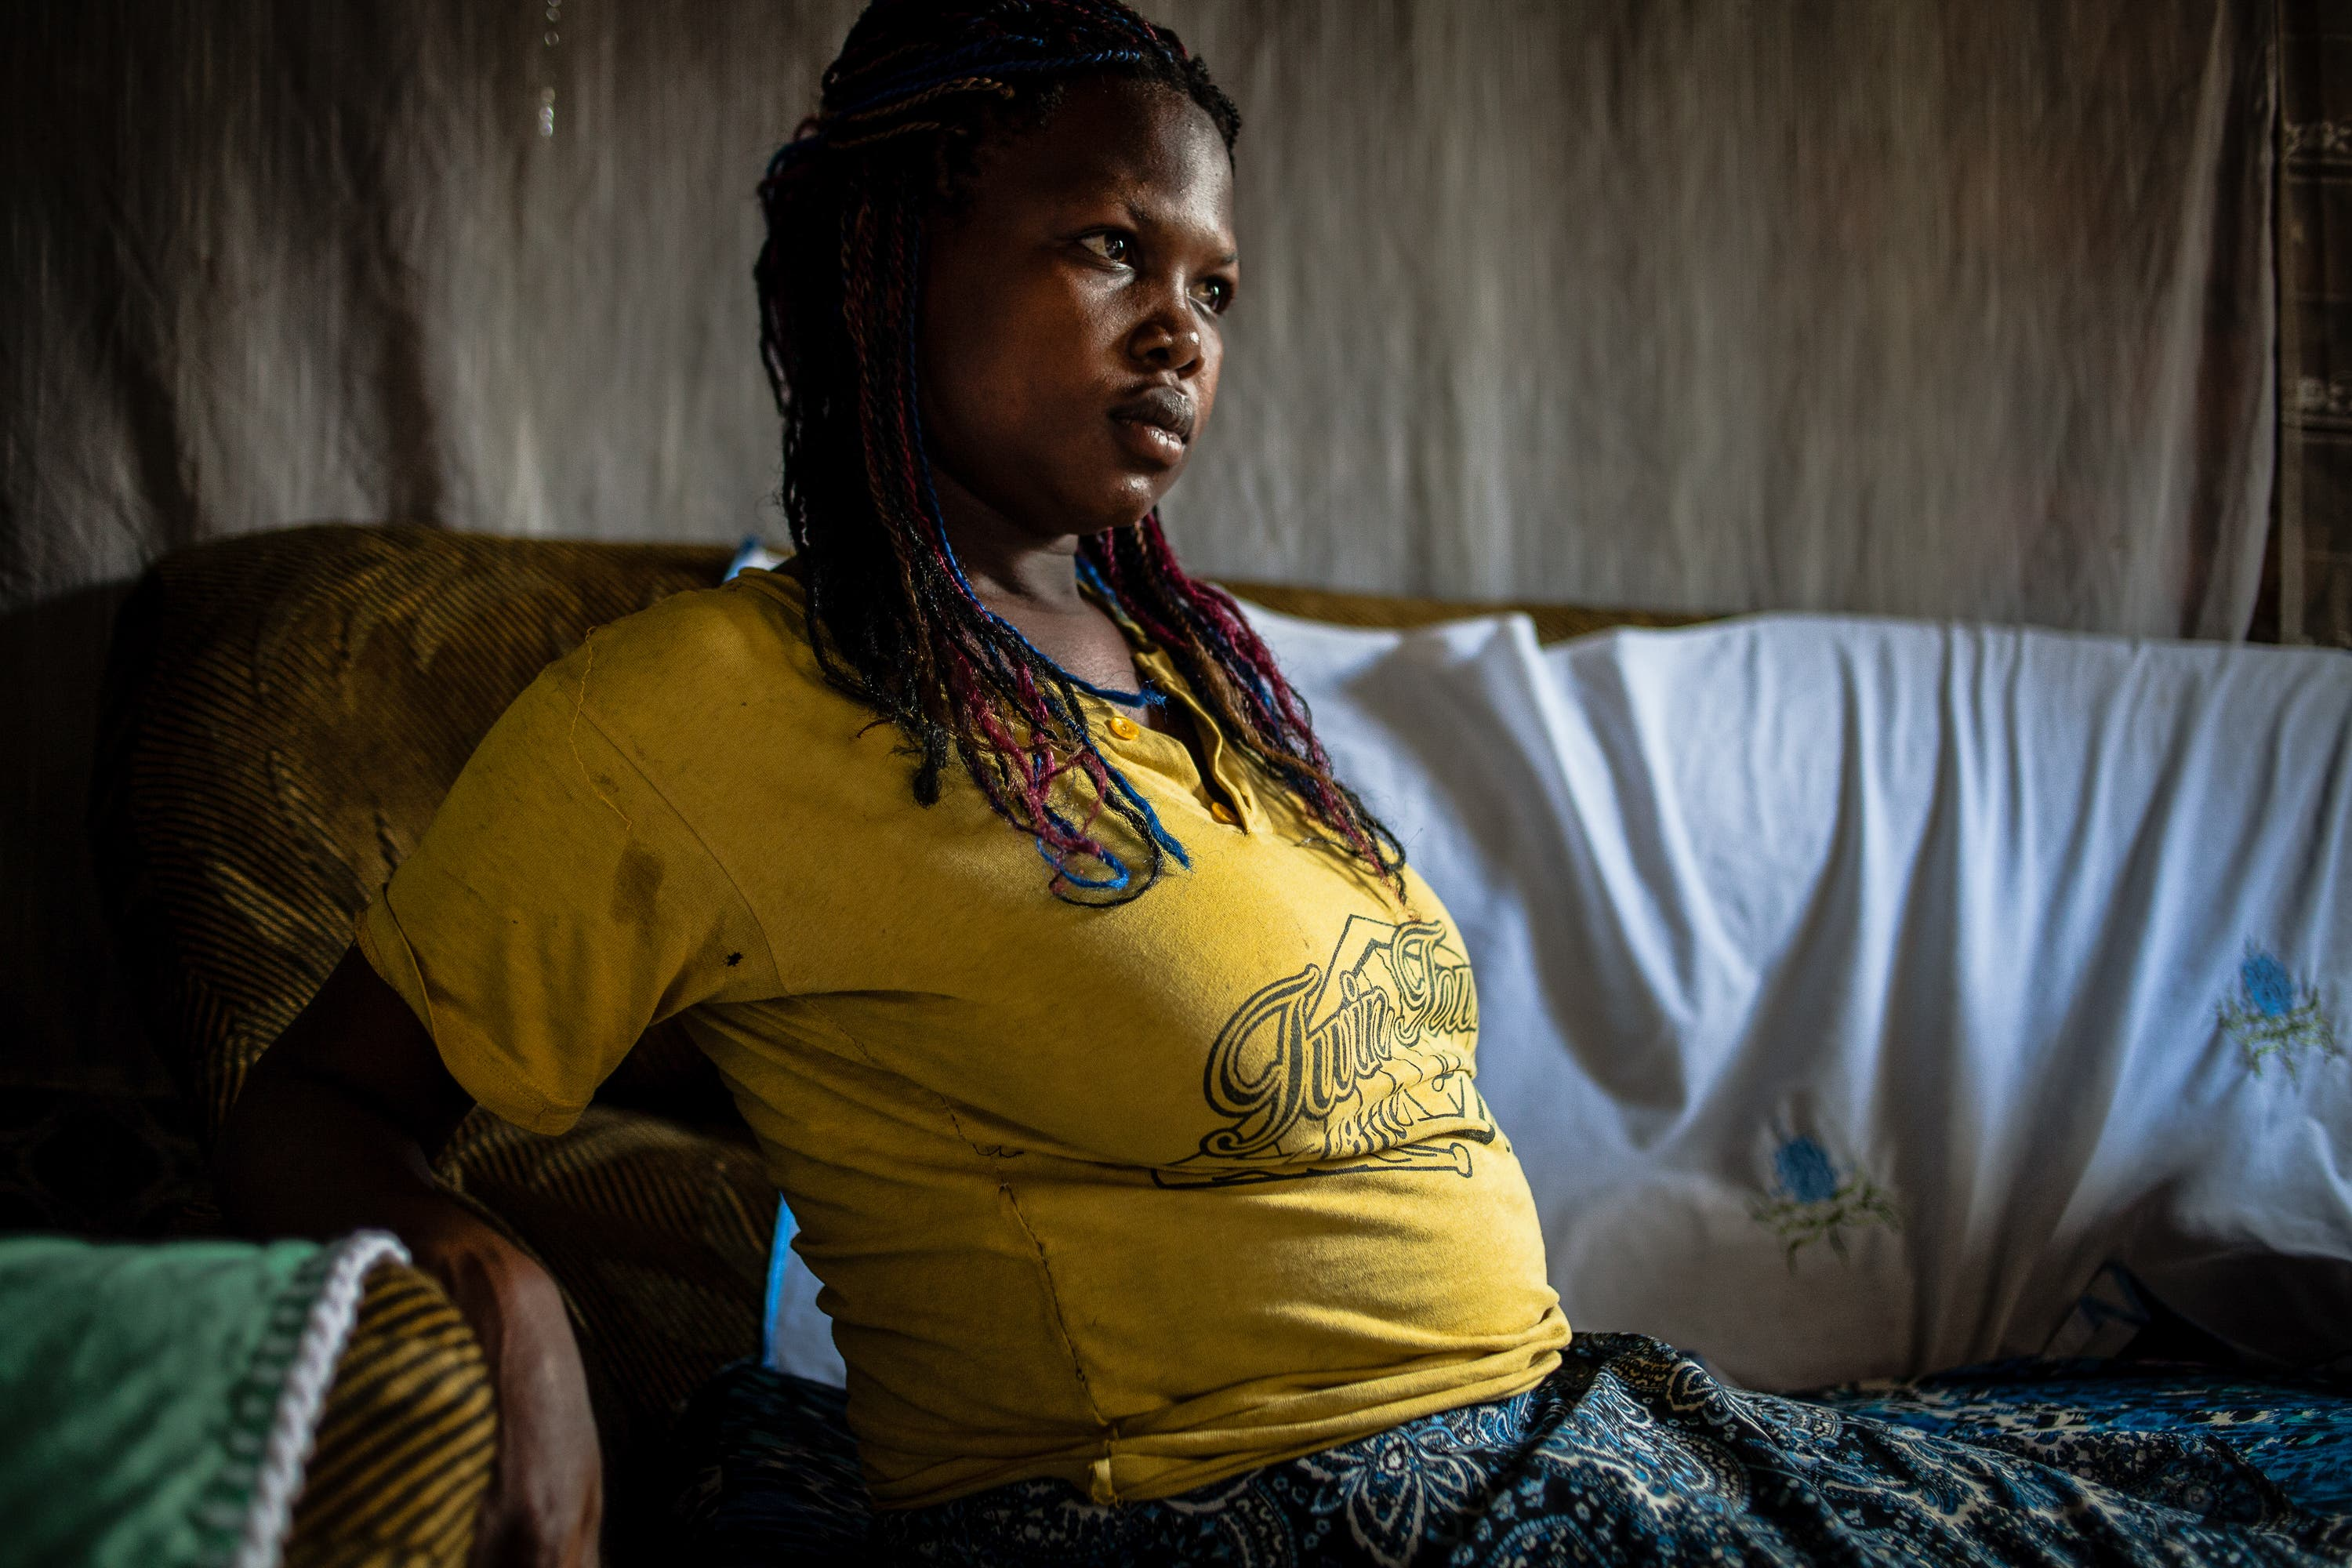 The Acquaintance: Esther Mbabazi's Photo Essay of Birth in Rural Uganda